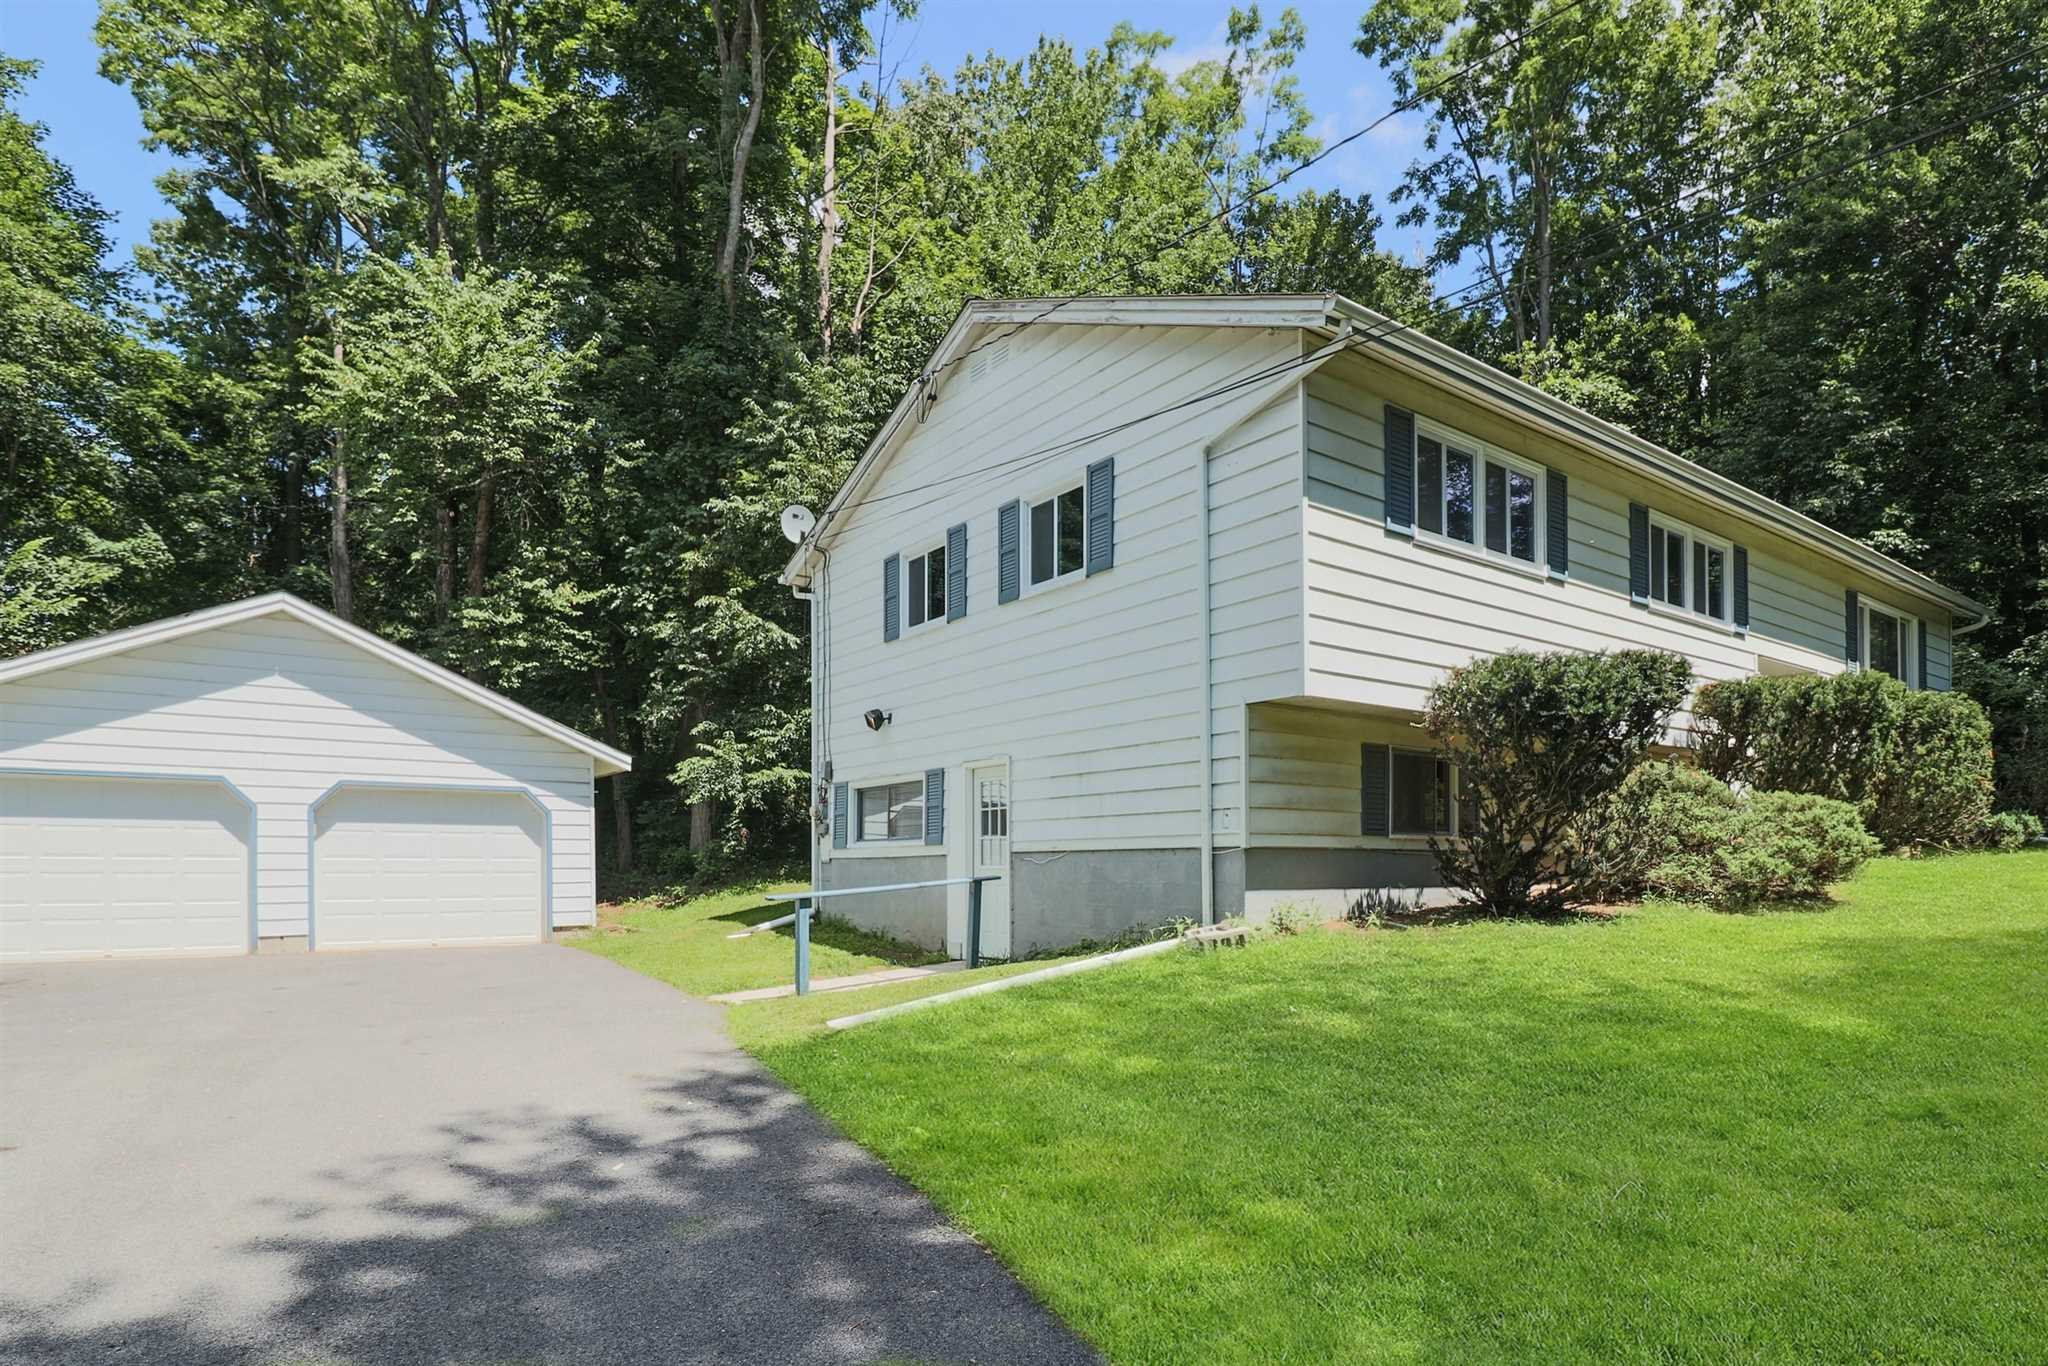 46 HILL AND HOLLOW RD Hyde Park, NY 12538 - MLS #: 363946